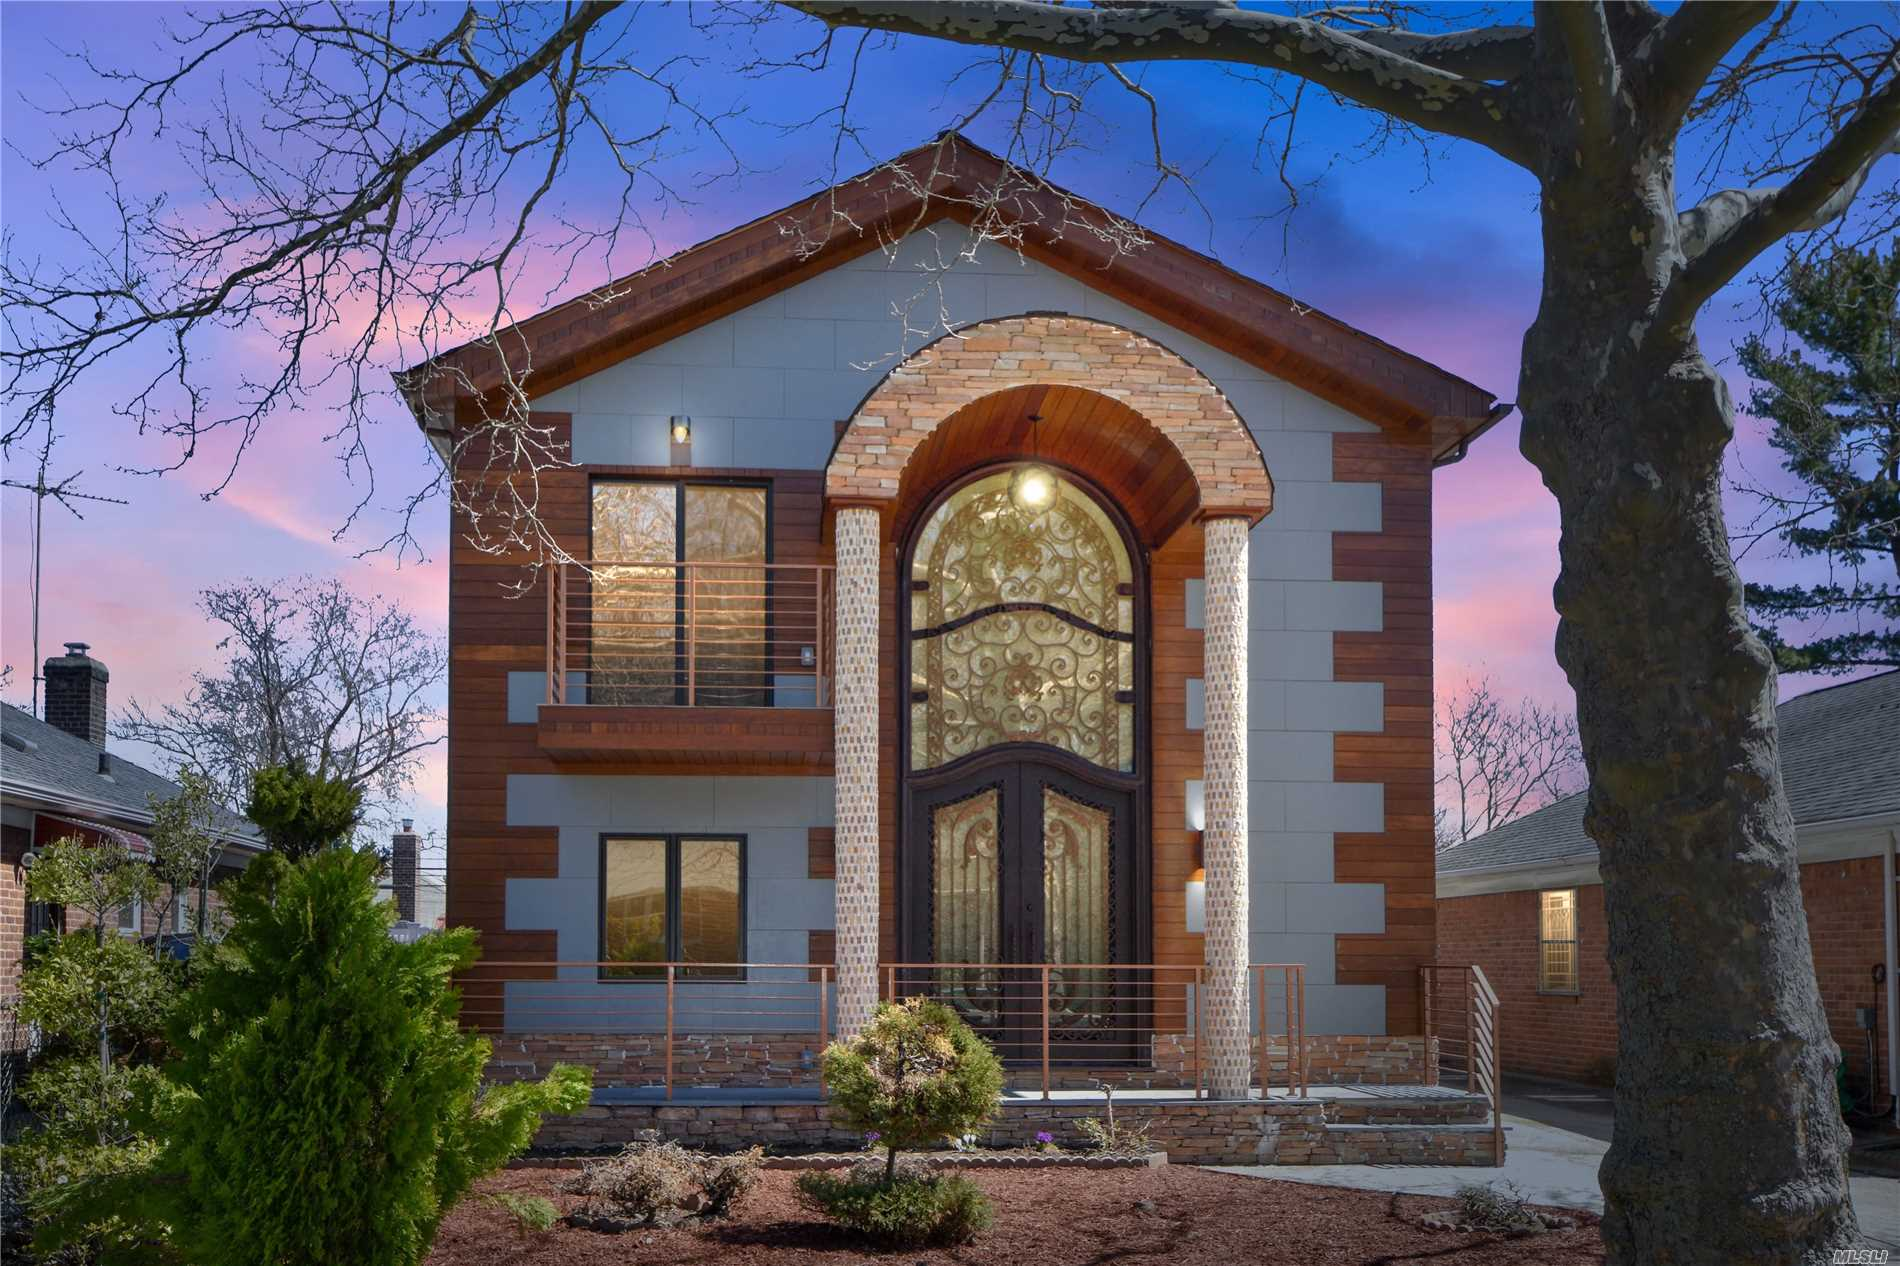 Picture Perfect Inside & Out! Complete Renovation! Quality Craftsmanship W/Custom Architectural Design Through-Out! Grand Cathedral Entryway, 4 Bdrms, 3.5 Baths, Custom Mosaic W/Copper Rose Gold, State Of The Art Kitchen W/Marble And Smart Appliances, Gleaming 100 Yr Warranty Heated Hardwood Floors, New He Plumbing, Heating And Electric, Ductless Cac, Custom Designed Cumaru Brazilian Teak And Portuguese Viroc Panels With Steel Entry Door, Tray Ceilings, Custom Molding, Full Fin Bsmt And More!